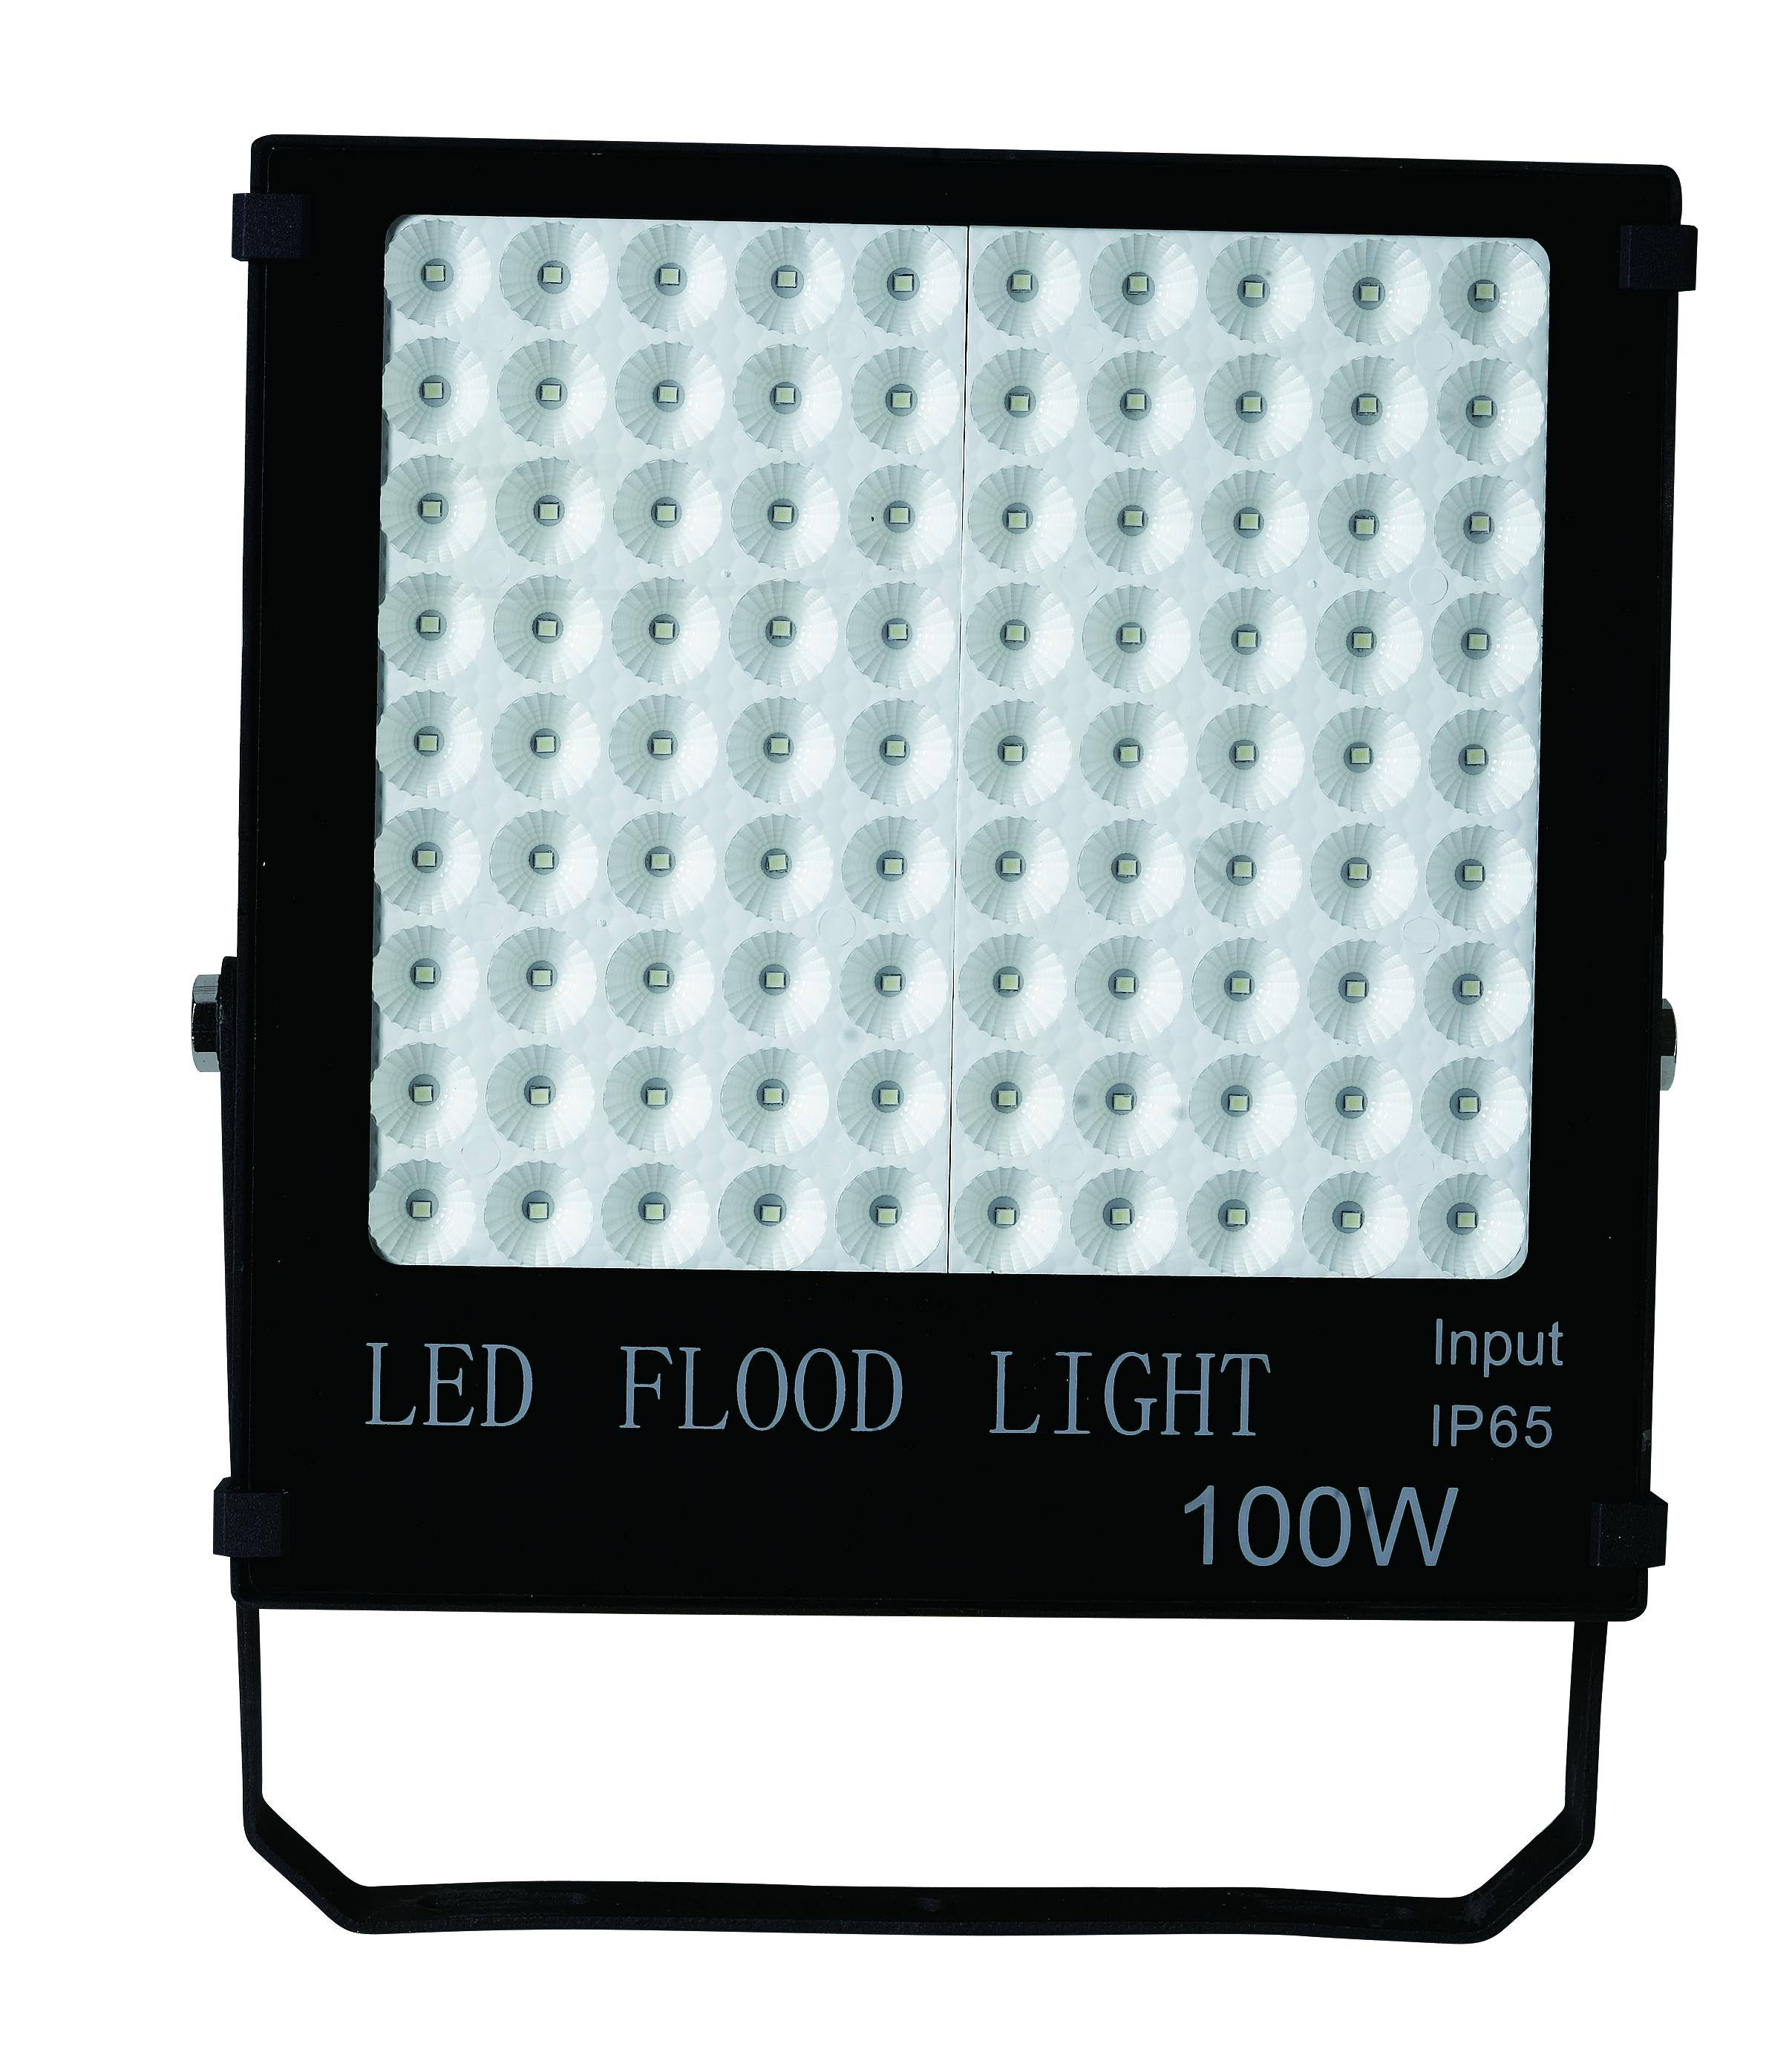 High Power High Lumen 400 Watt Outdoor LED Flood Light with UL Philips Driver and 5 Years Warranty F